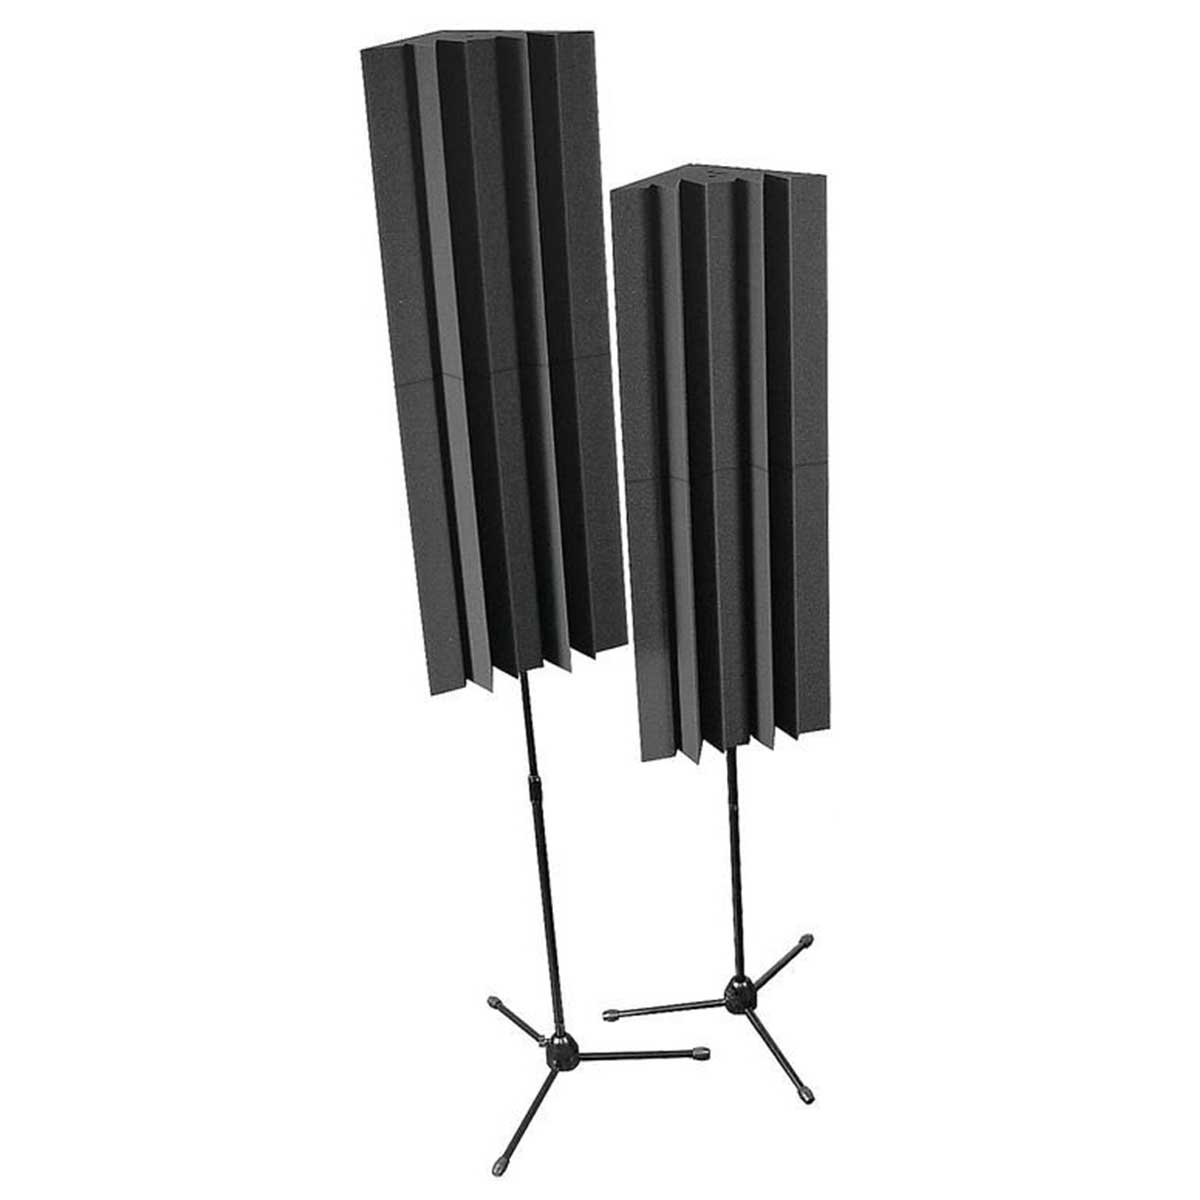 Auralex Lenrd Mounted LENRD Bass traps x 4 (2 stands) - Charcoal